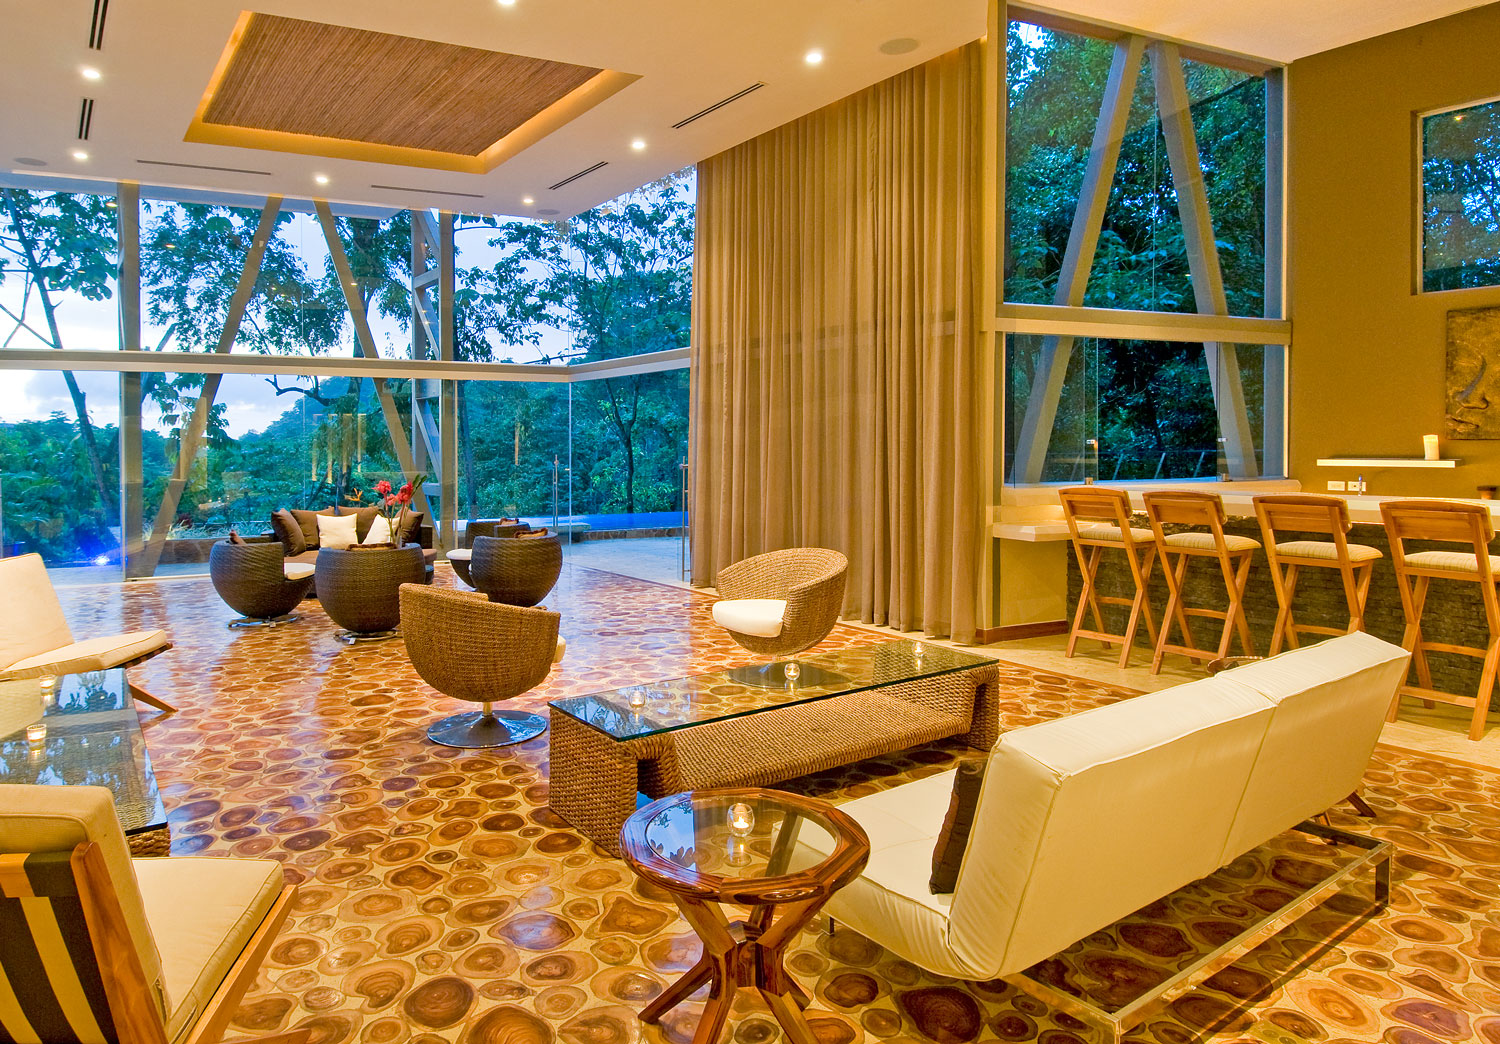 Luxury Villa Lobby in Costa Rica